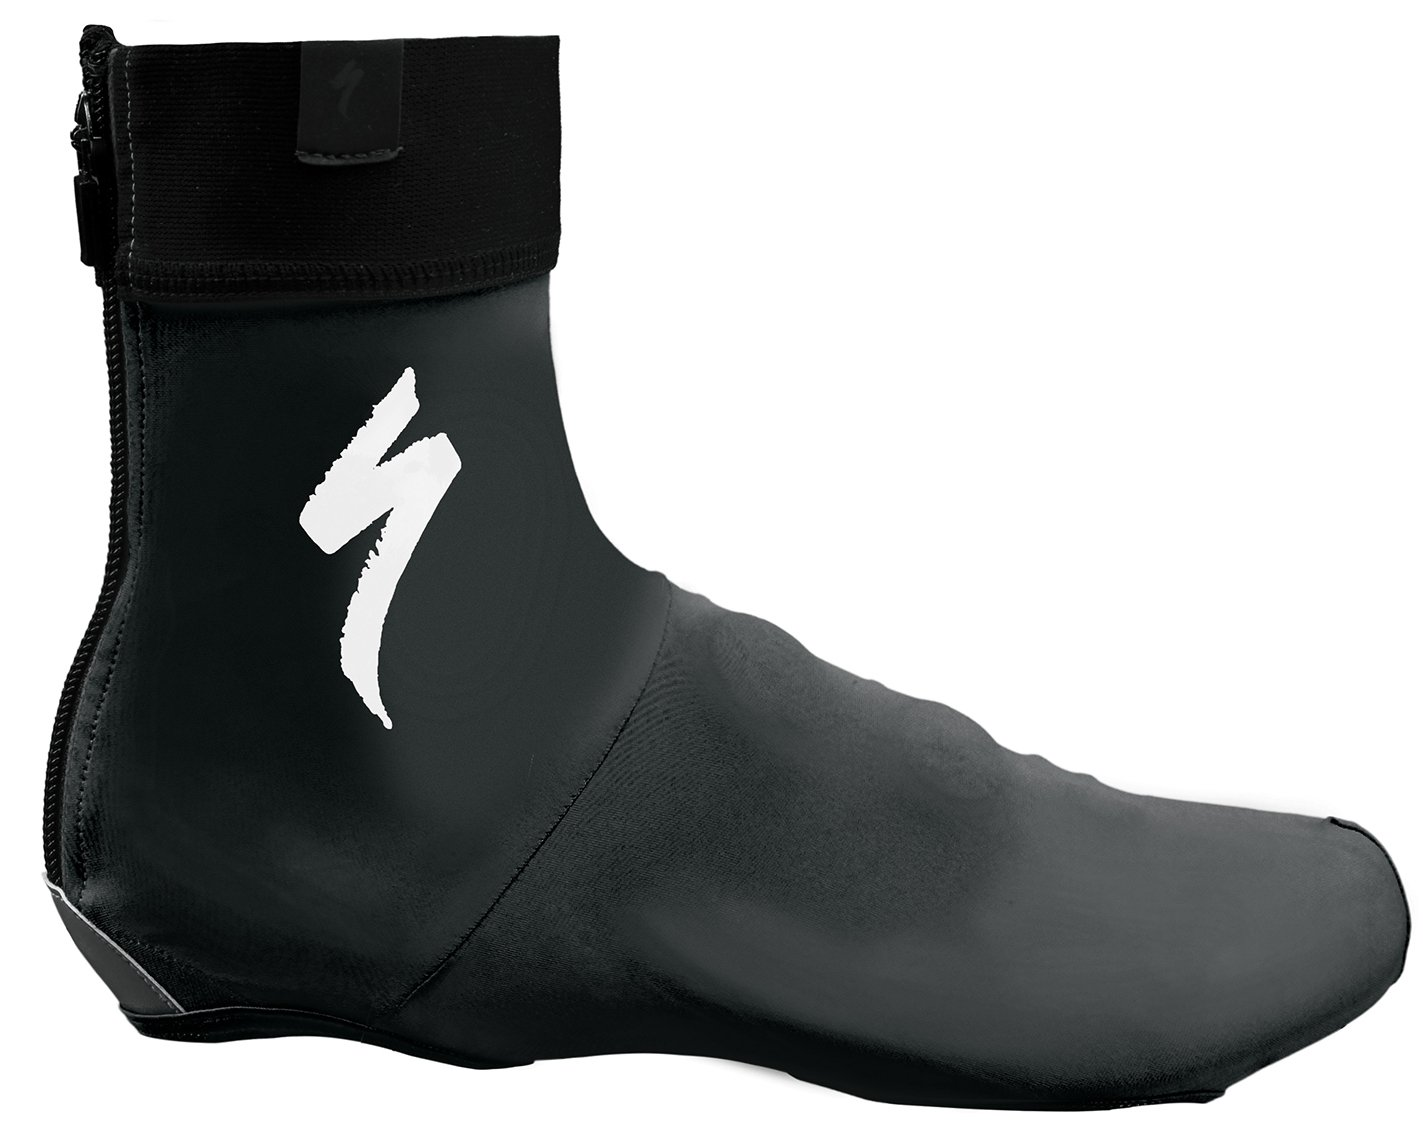 Specialized Shoe Cover with S-Logo M